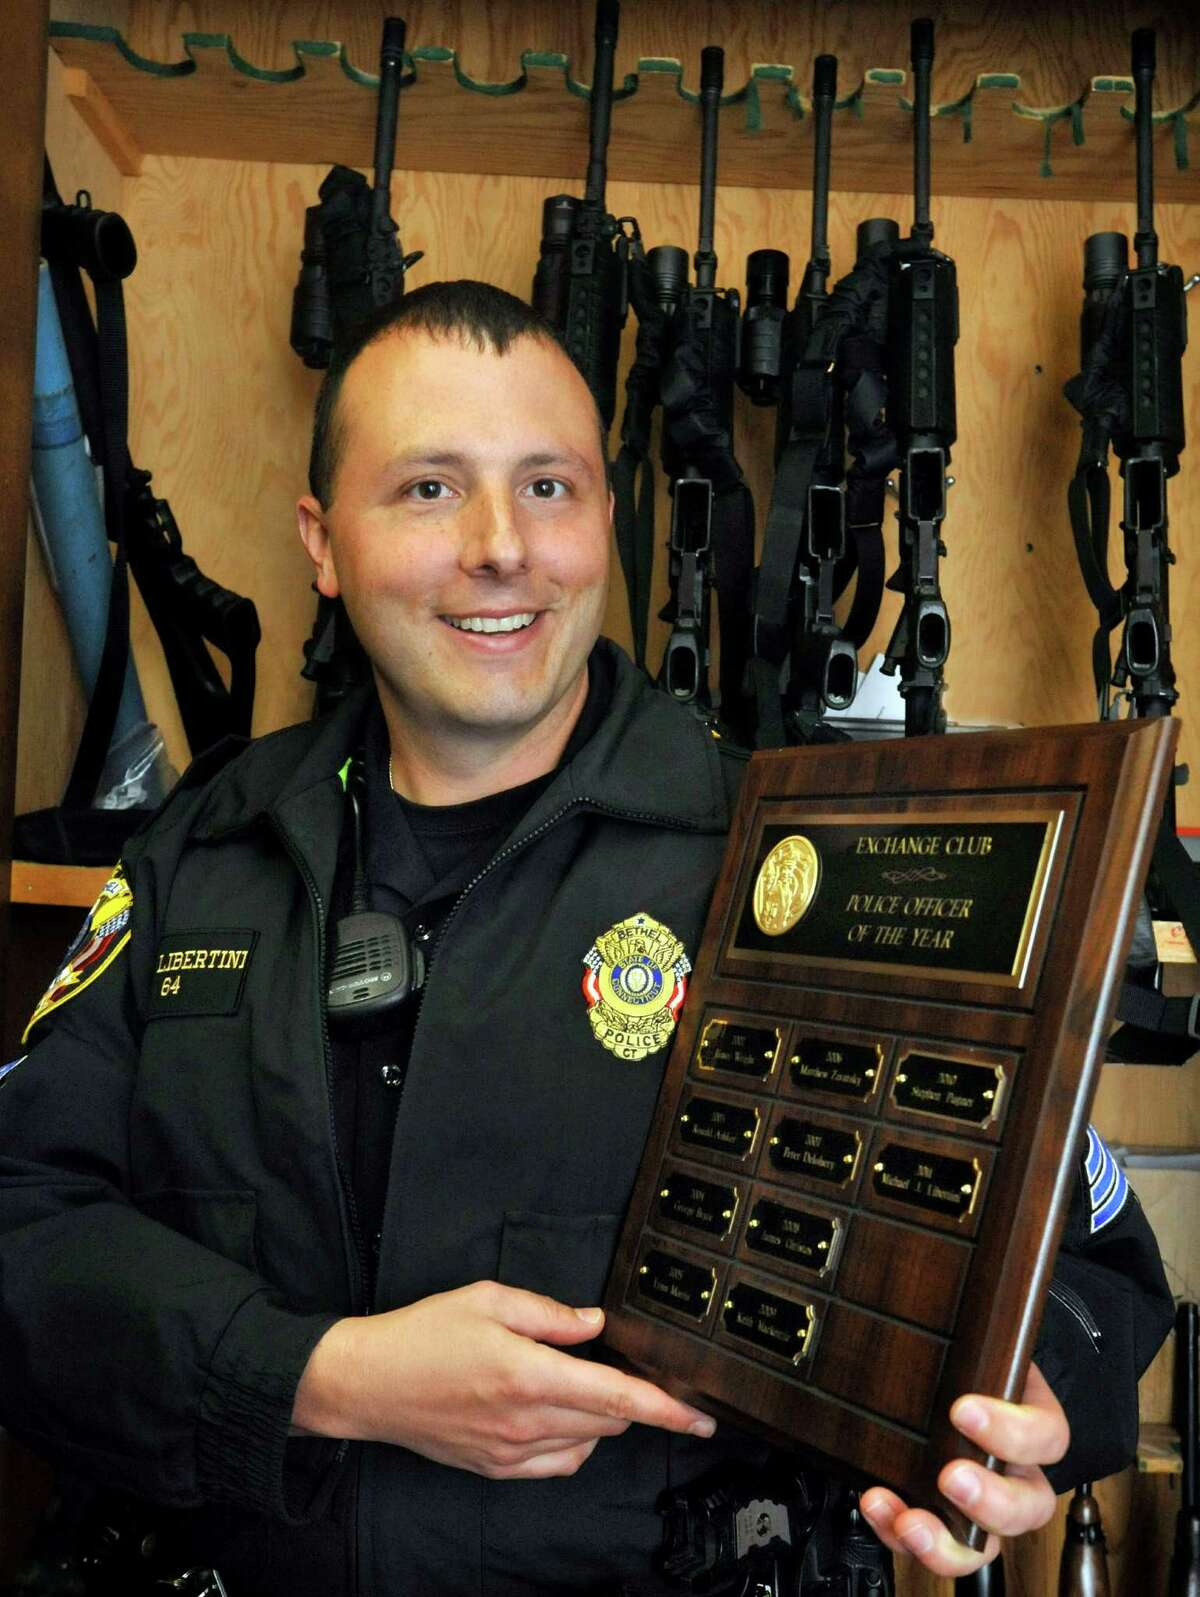 Sgt. Michael Libertini holds the Danbury Exchange Club plaque with his name as Bethel Police Officer of the Year at the Bethel Police Station Saturday, April 28, 2012.